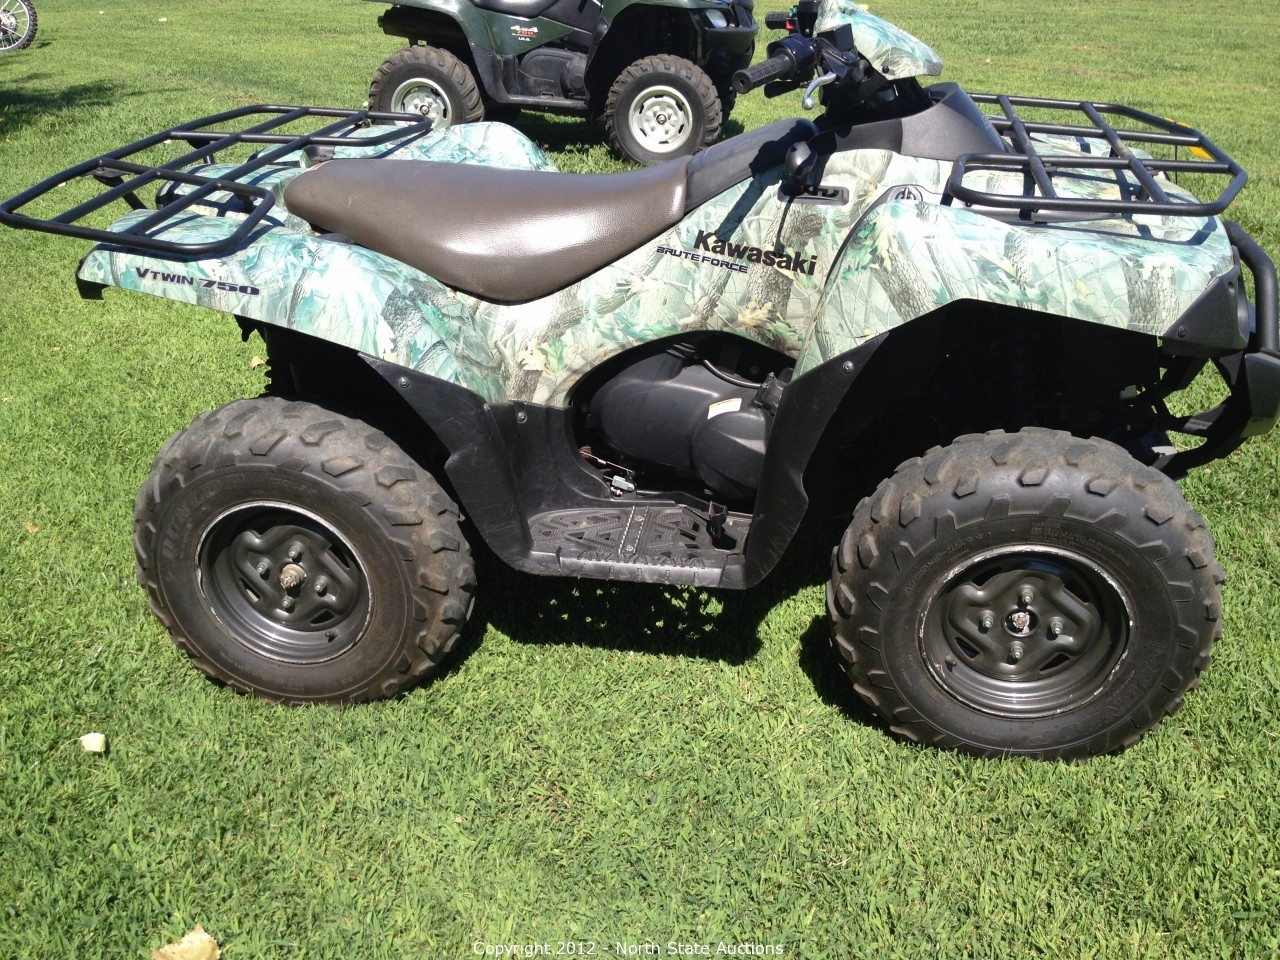 north state auctions auction motorcycle extravaganza item 2006 kawasaki brute force 750 v twin. Black Bedroom Furniture Sets. Home Design Ideas